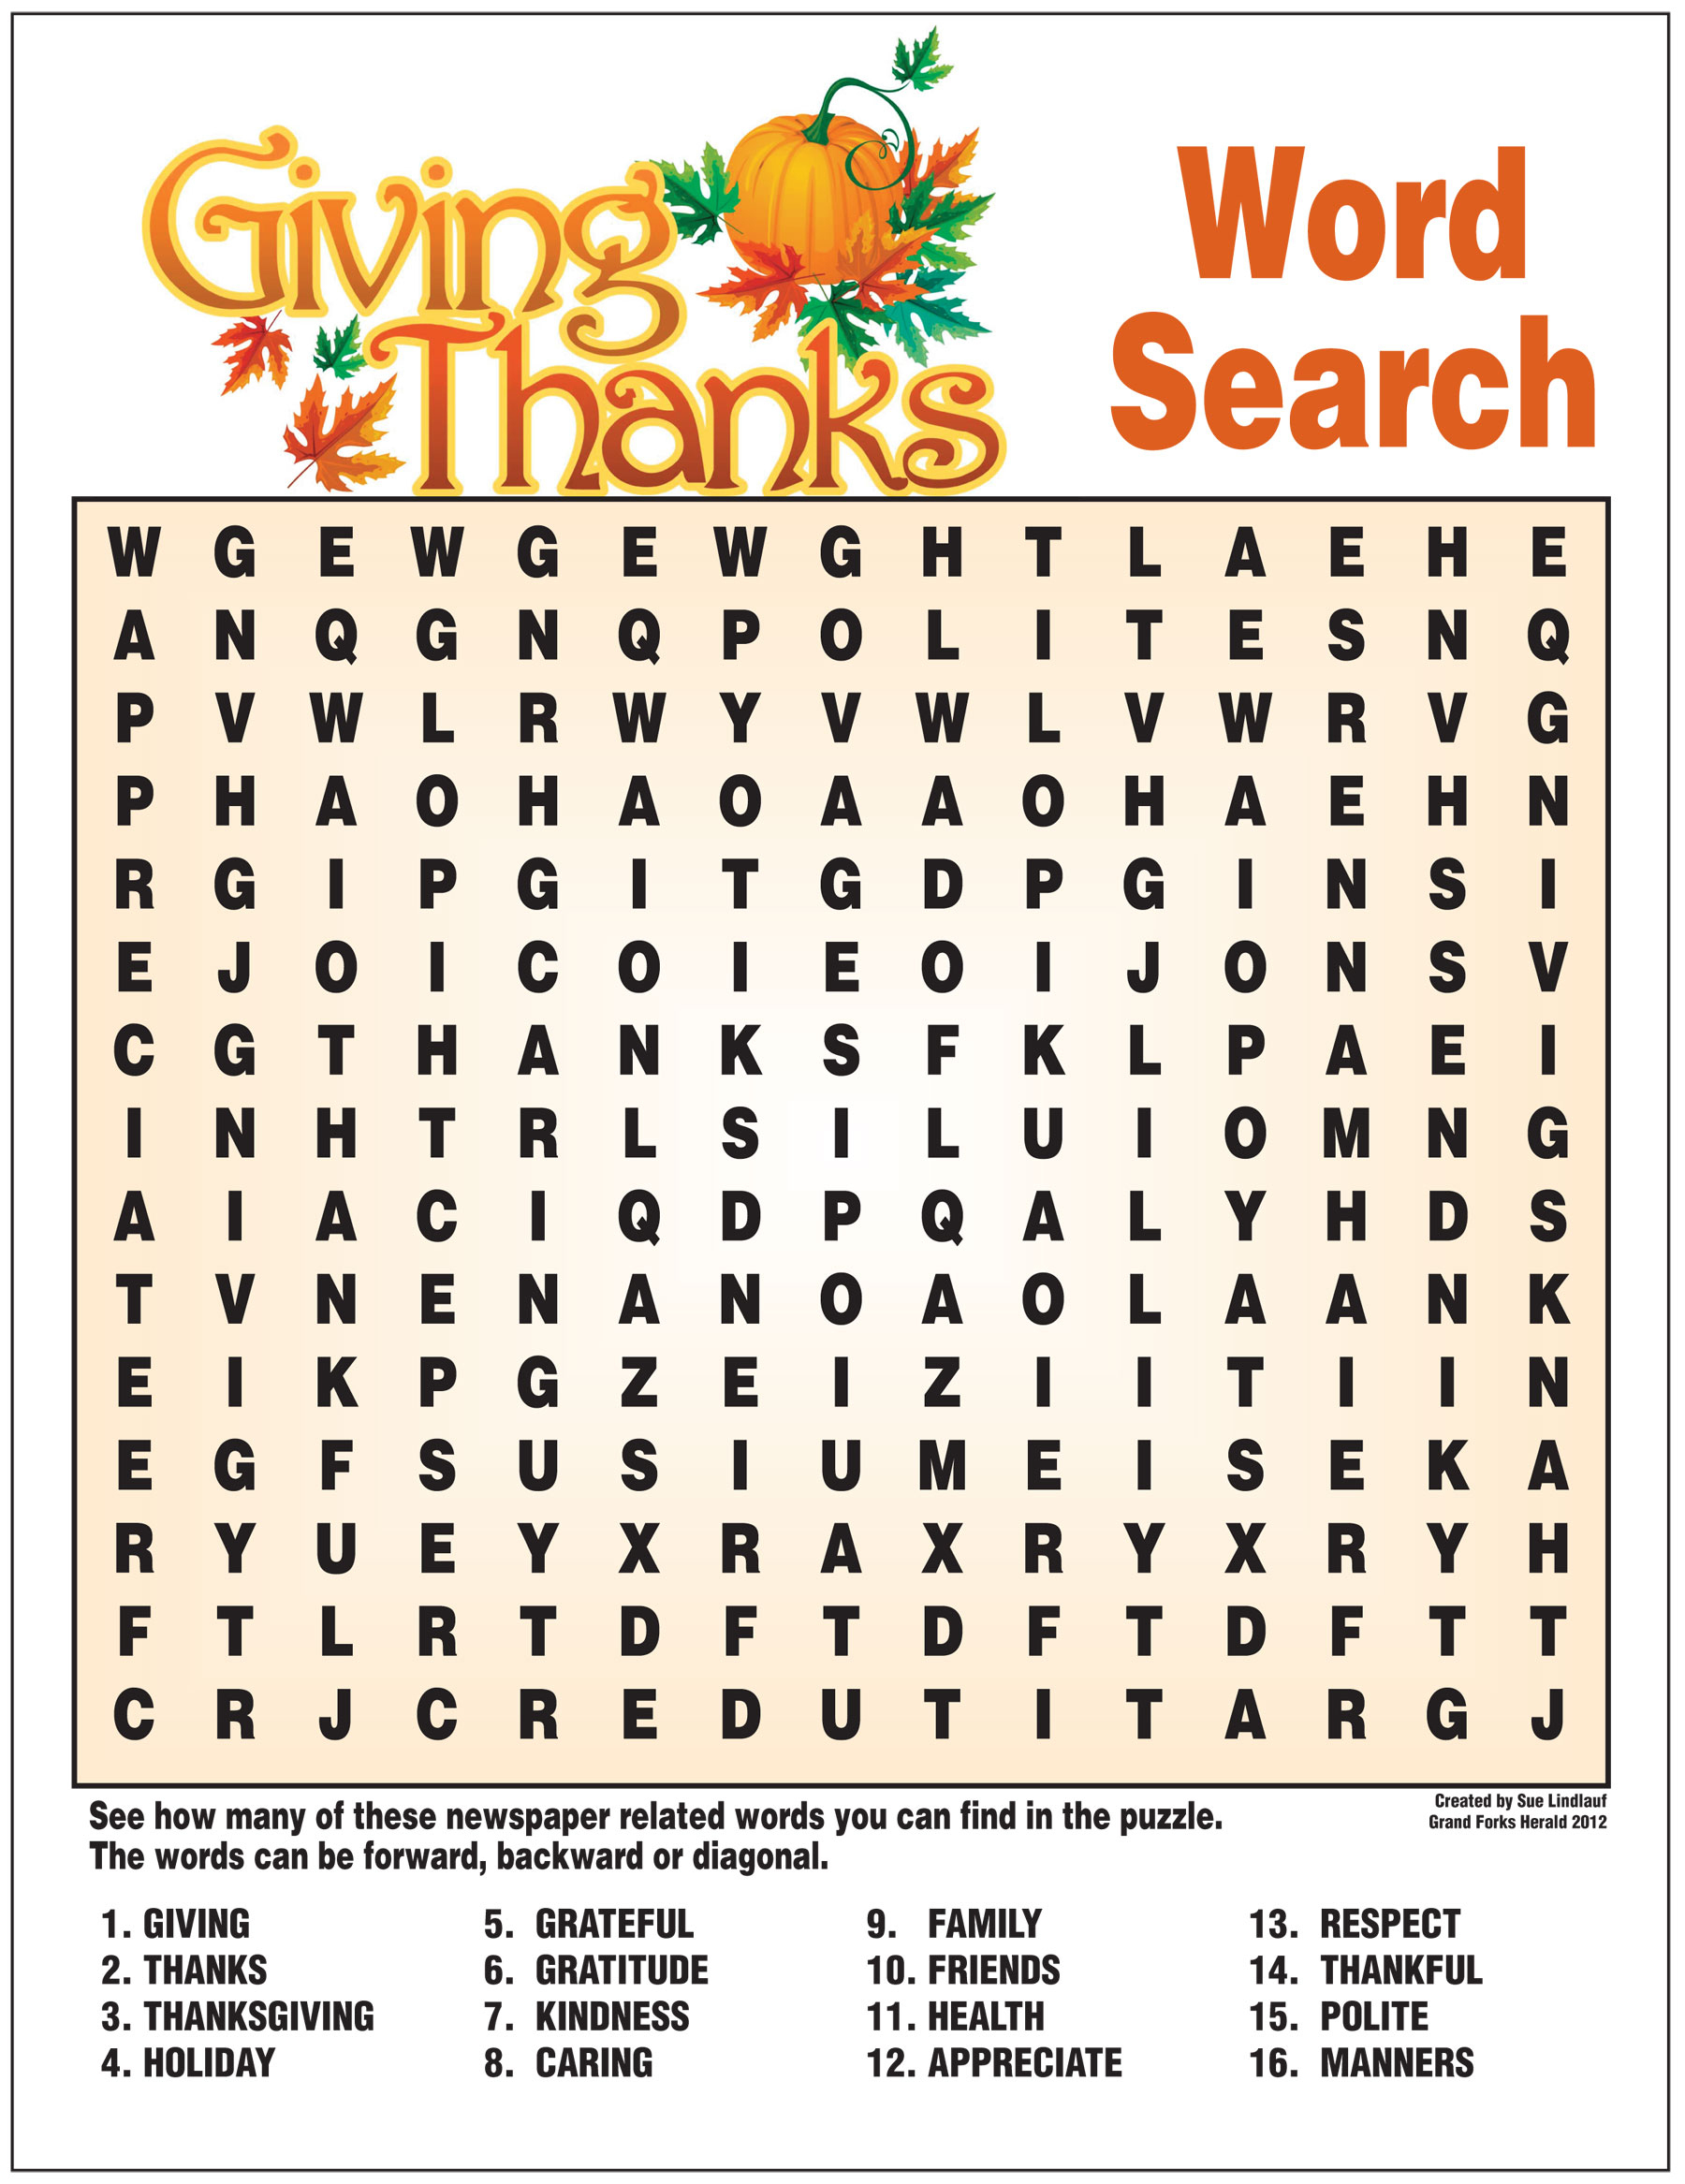 Giving Thanks Word Search Border Puzzle Maker Online ~ Themarketonholly - Word Search Maker Online Free Printable